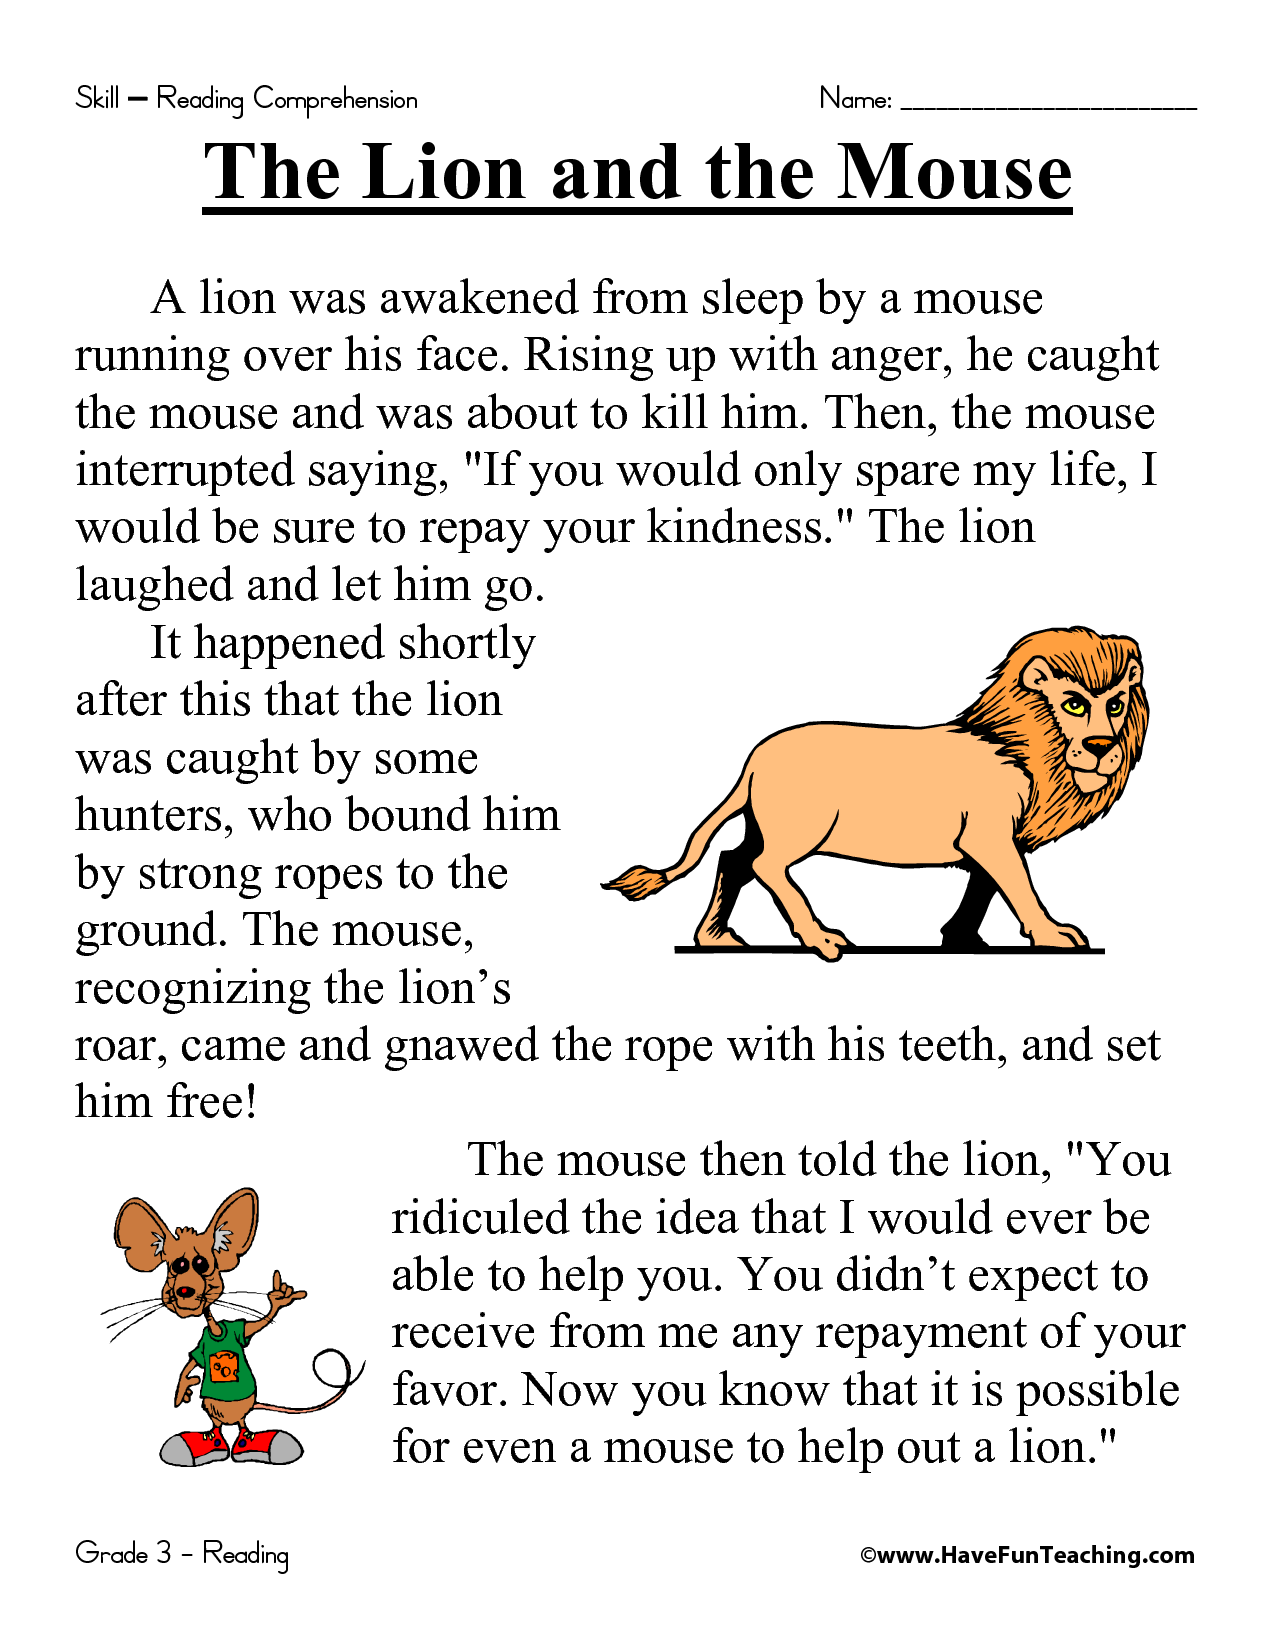 Worksheet Reading Comprehension 3rd Grade Free first grade reading comprehension worksheets the lion and mouse worksheet